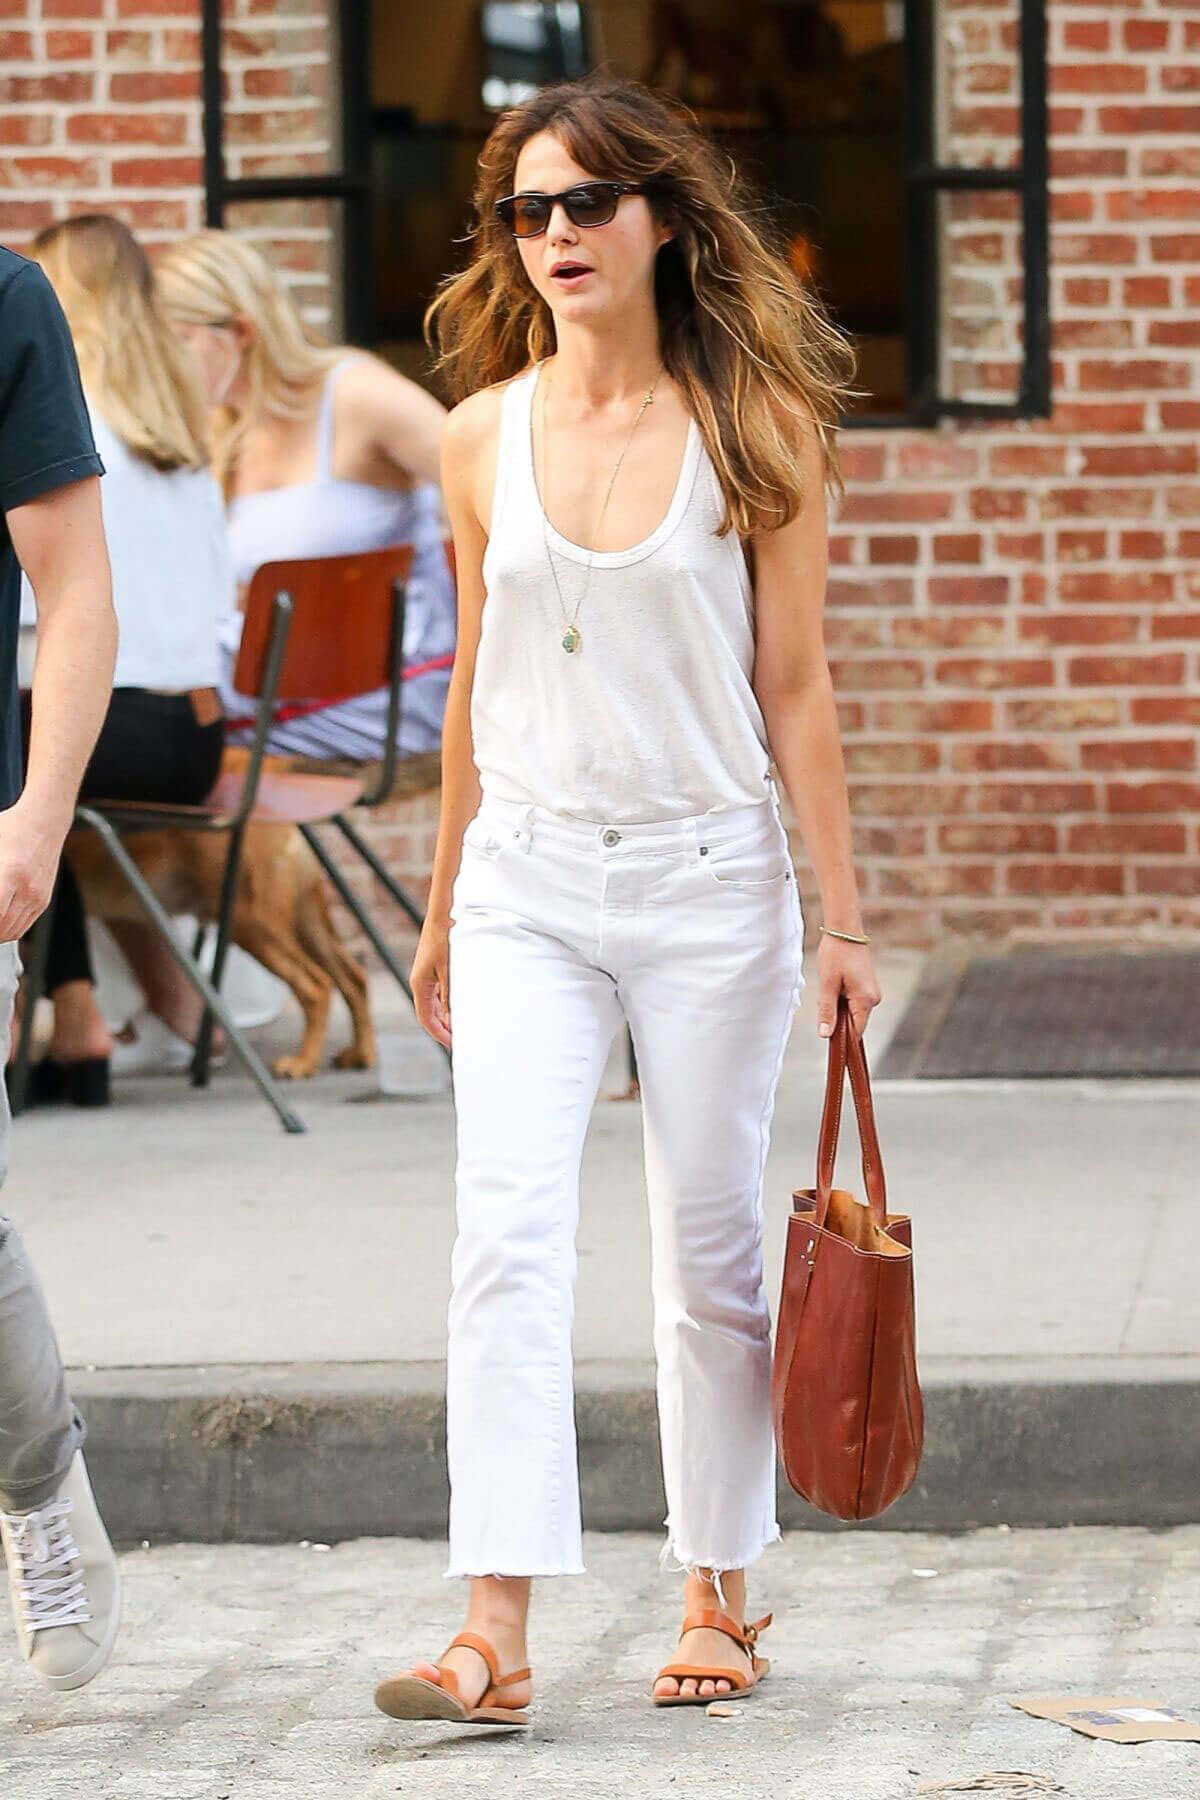 Keri Russell wears Tank Top & Jeans Out and About in New York